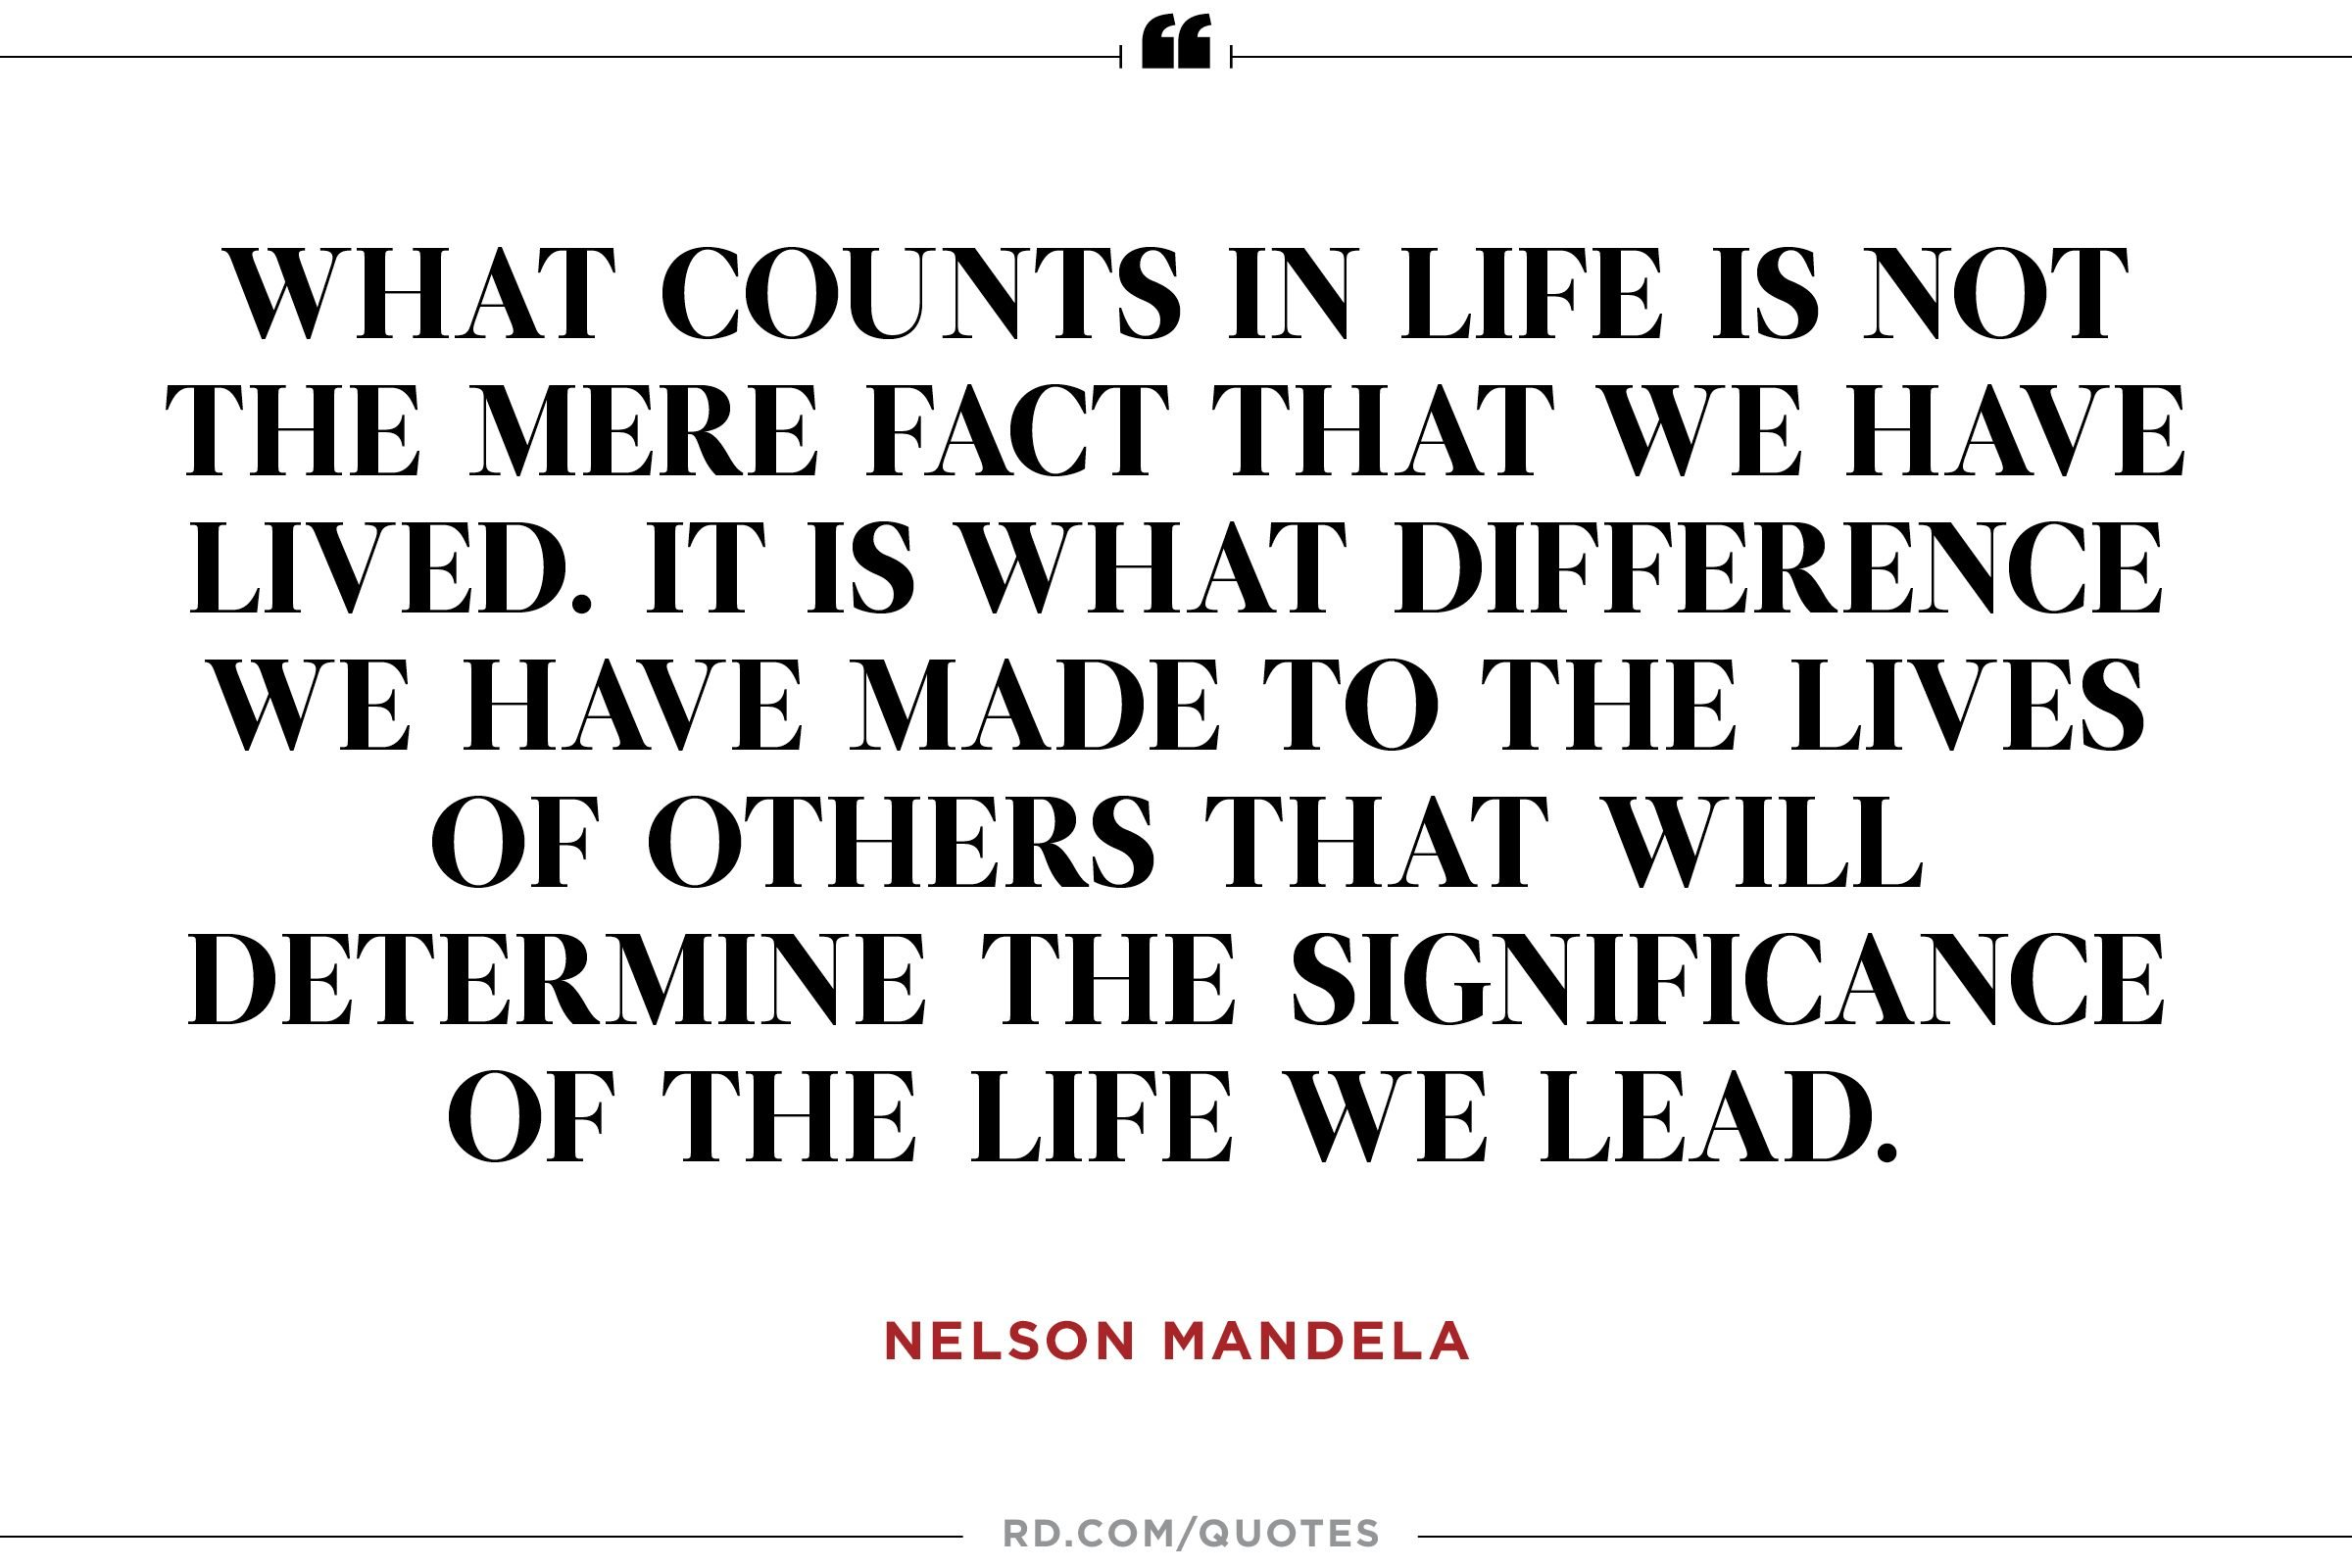 """...what difference we have made the lives of others..."""